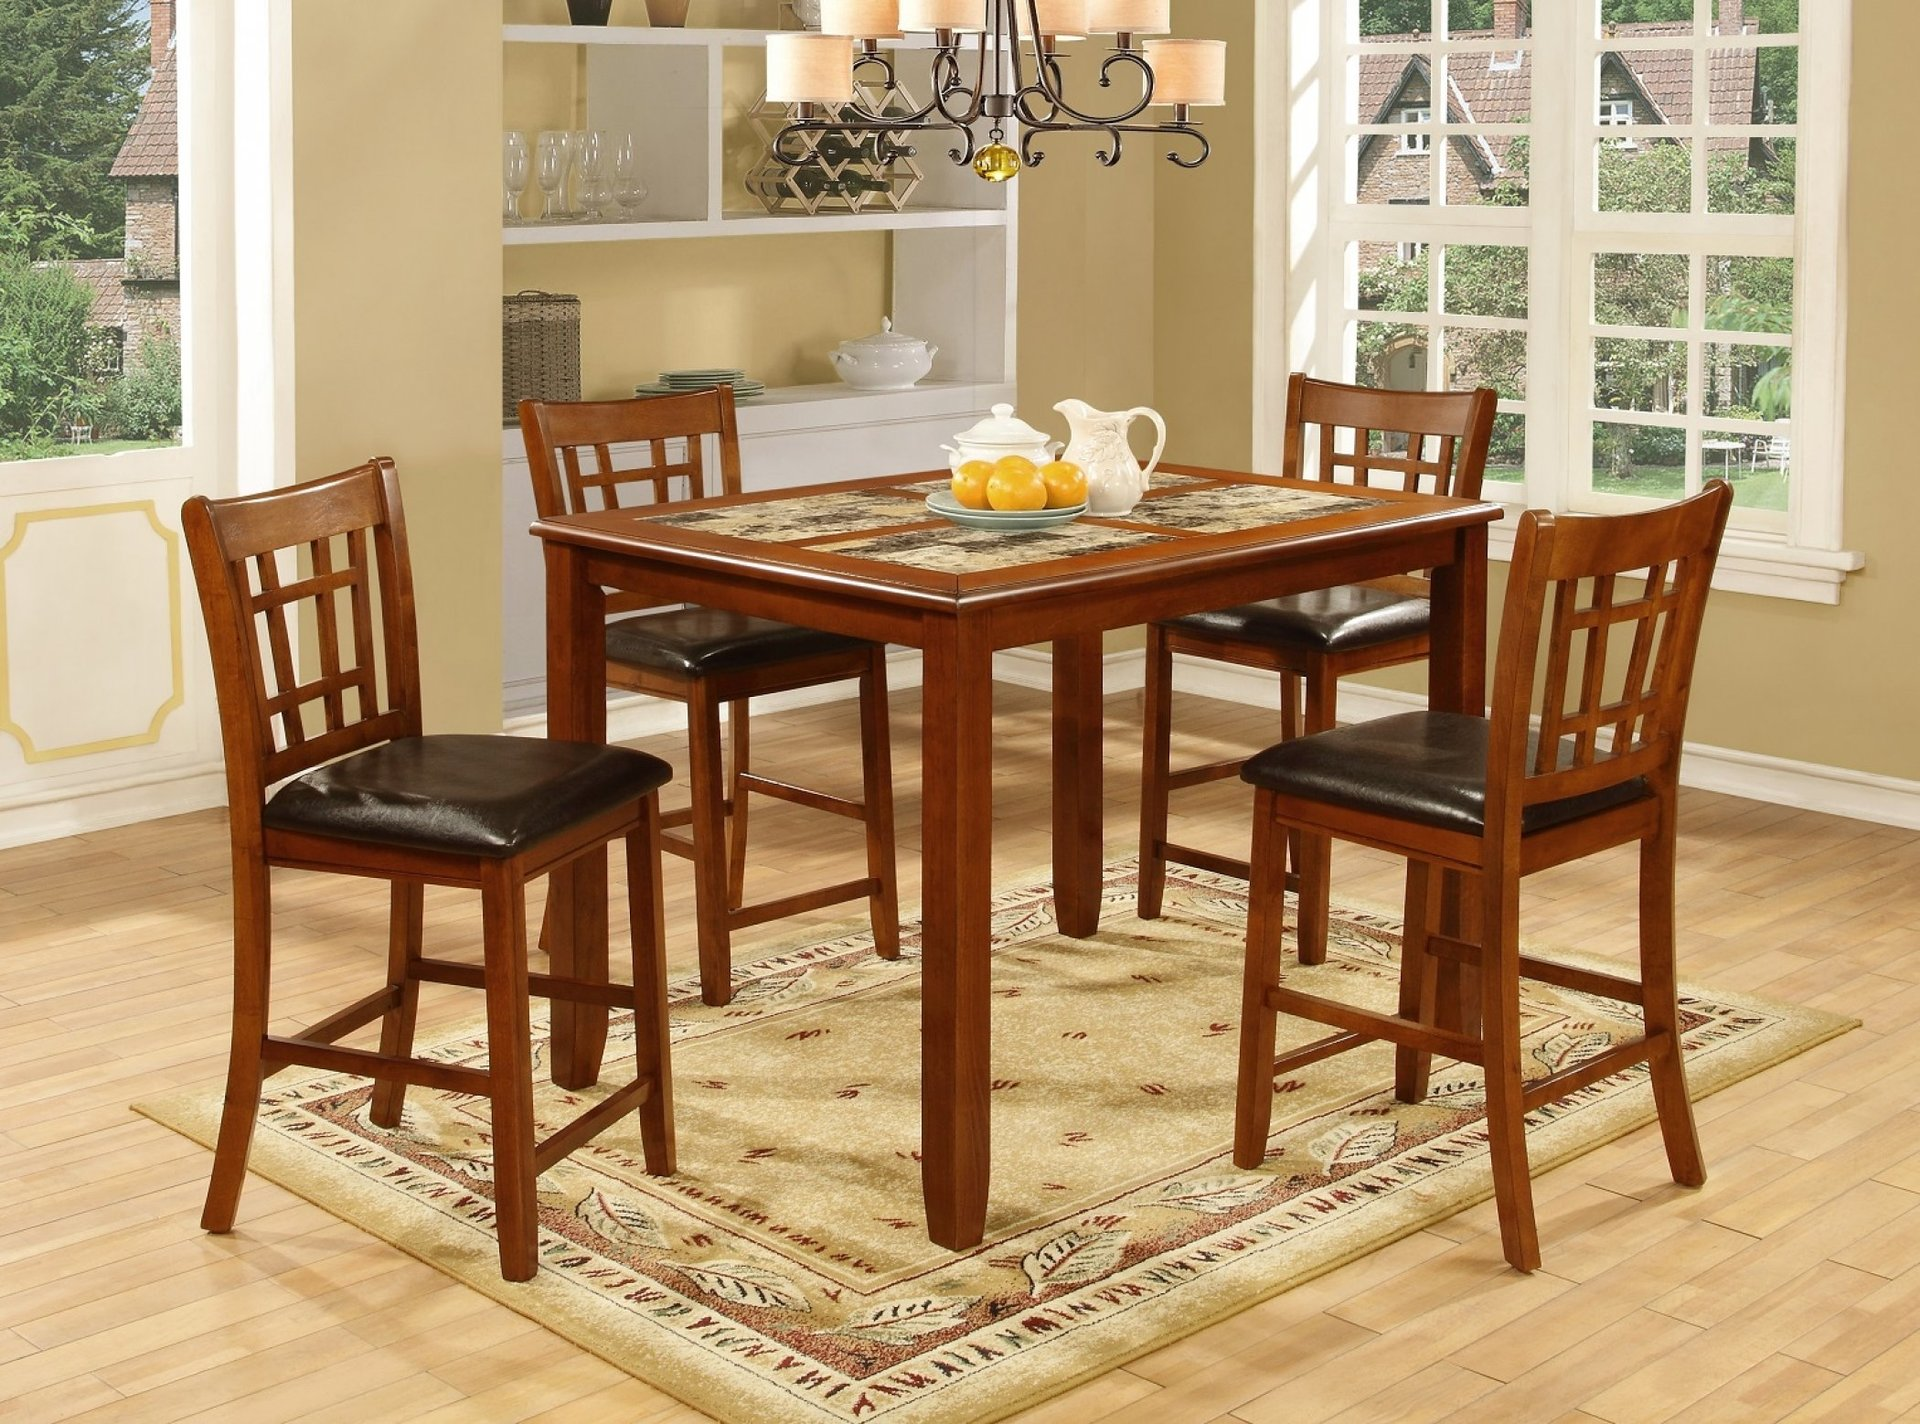 New Dining Room Sets Nashua Nh Light Of Dining Room